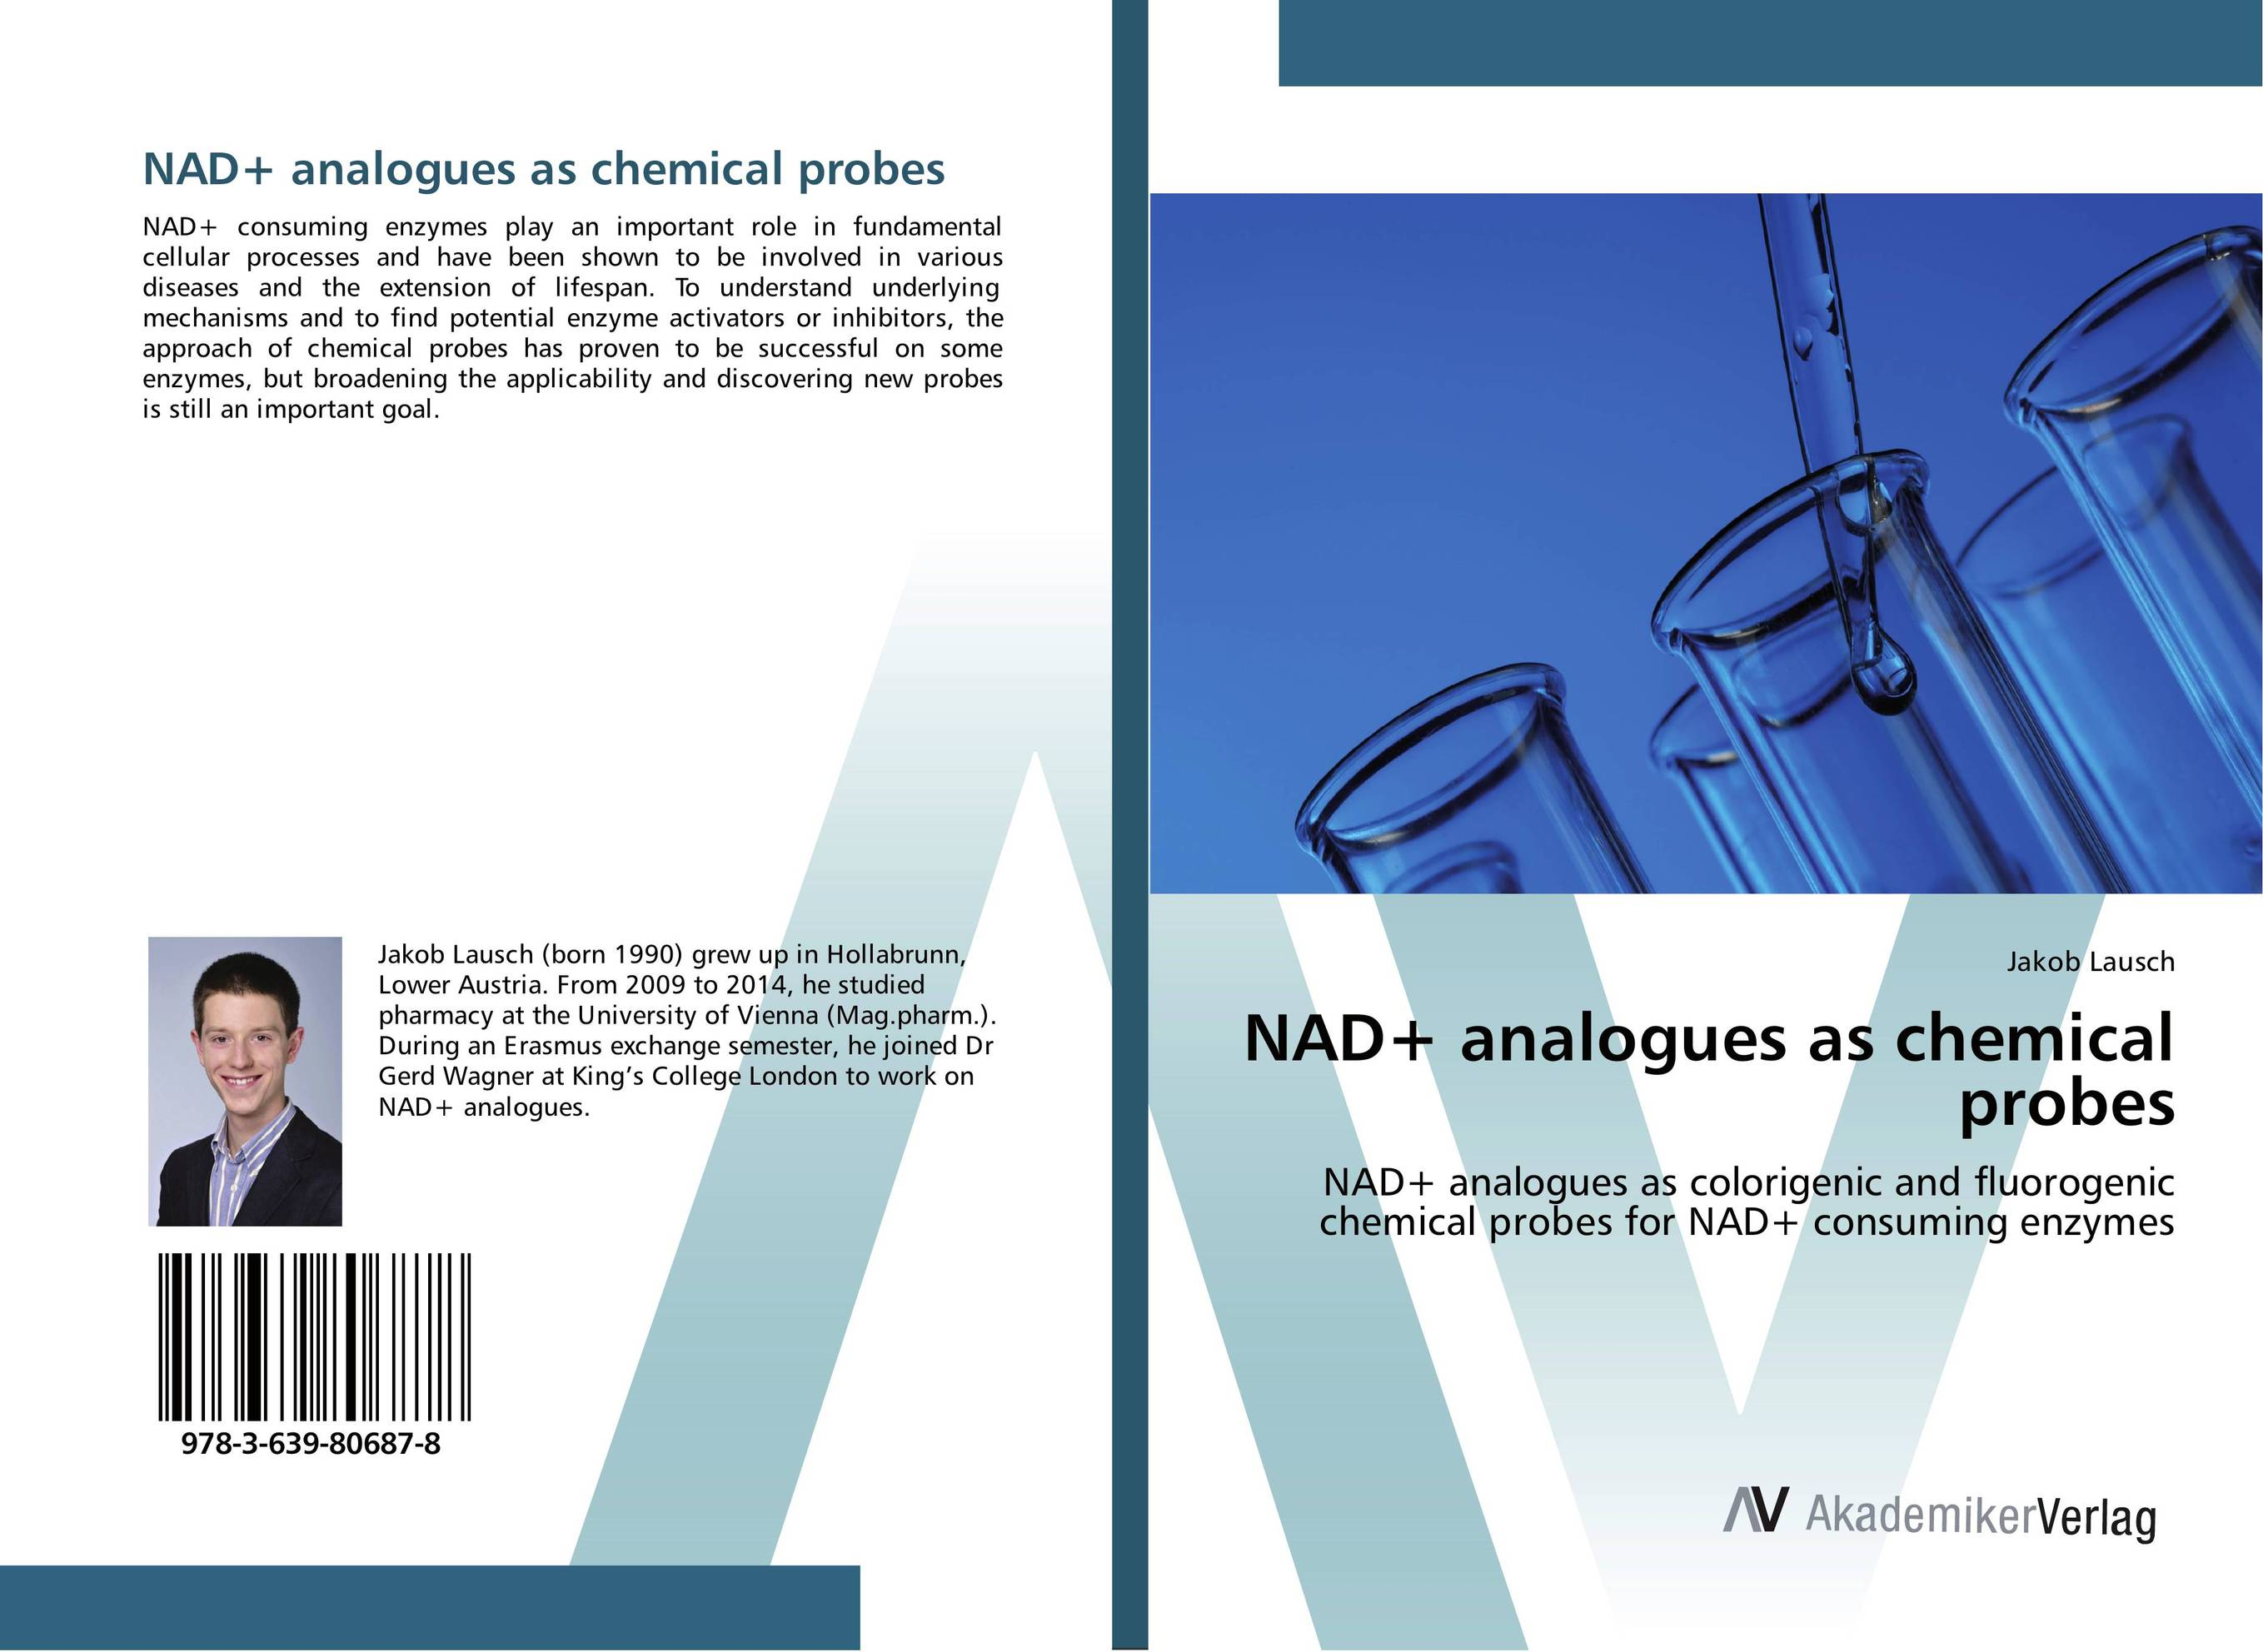 NAD+ analogues as chemical probes nad c275bee